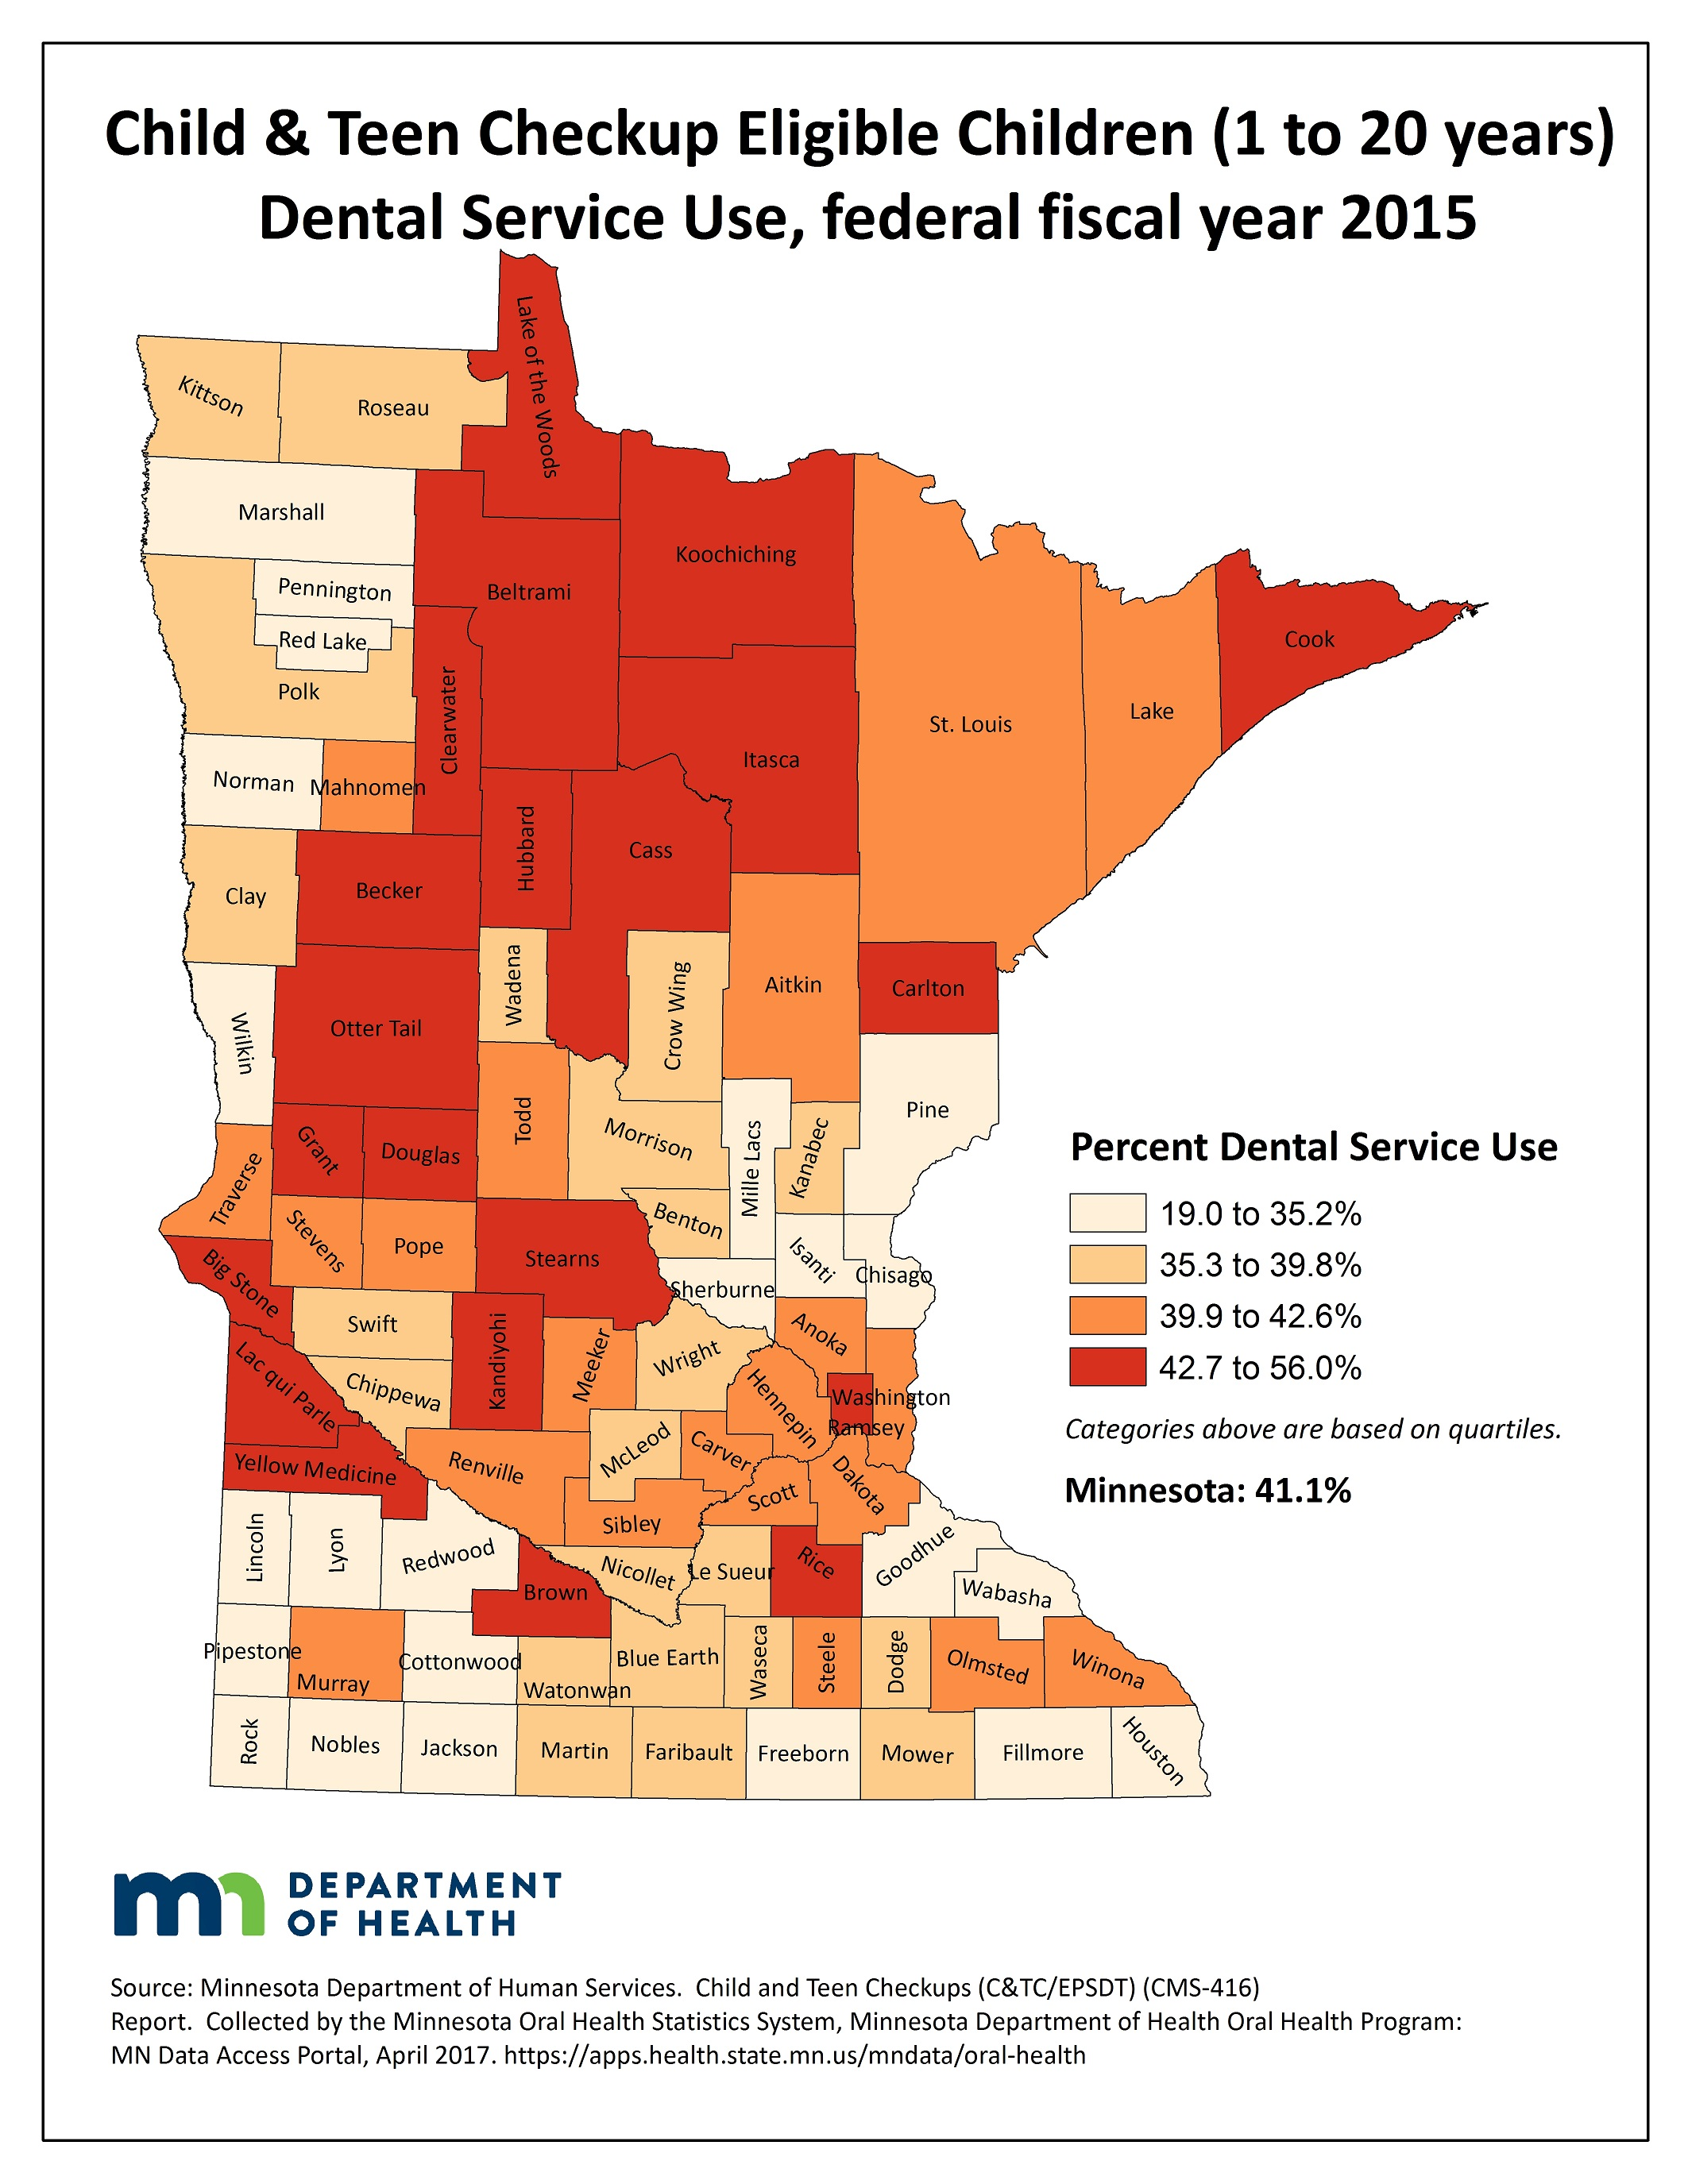 County map image Child & Teen Checkup Eligible Children (1 to 20 years) Dental Service Use and link to PDF of the same